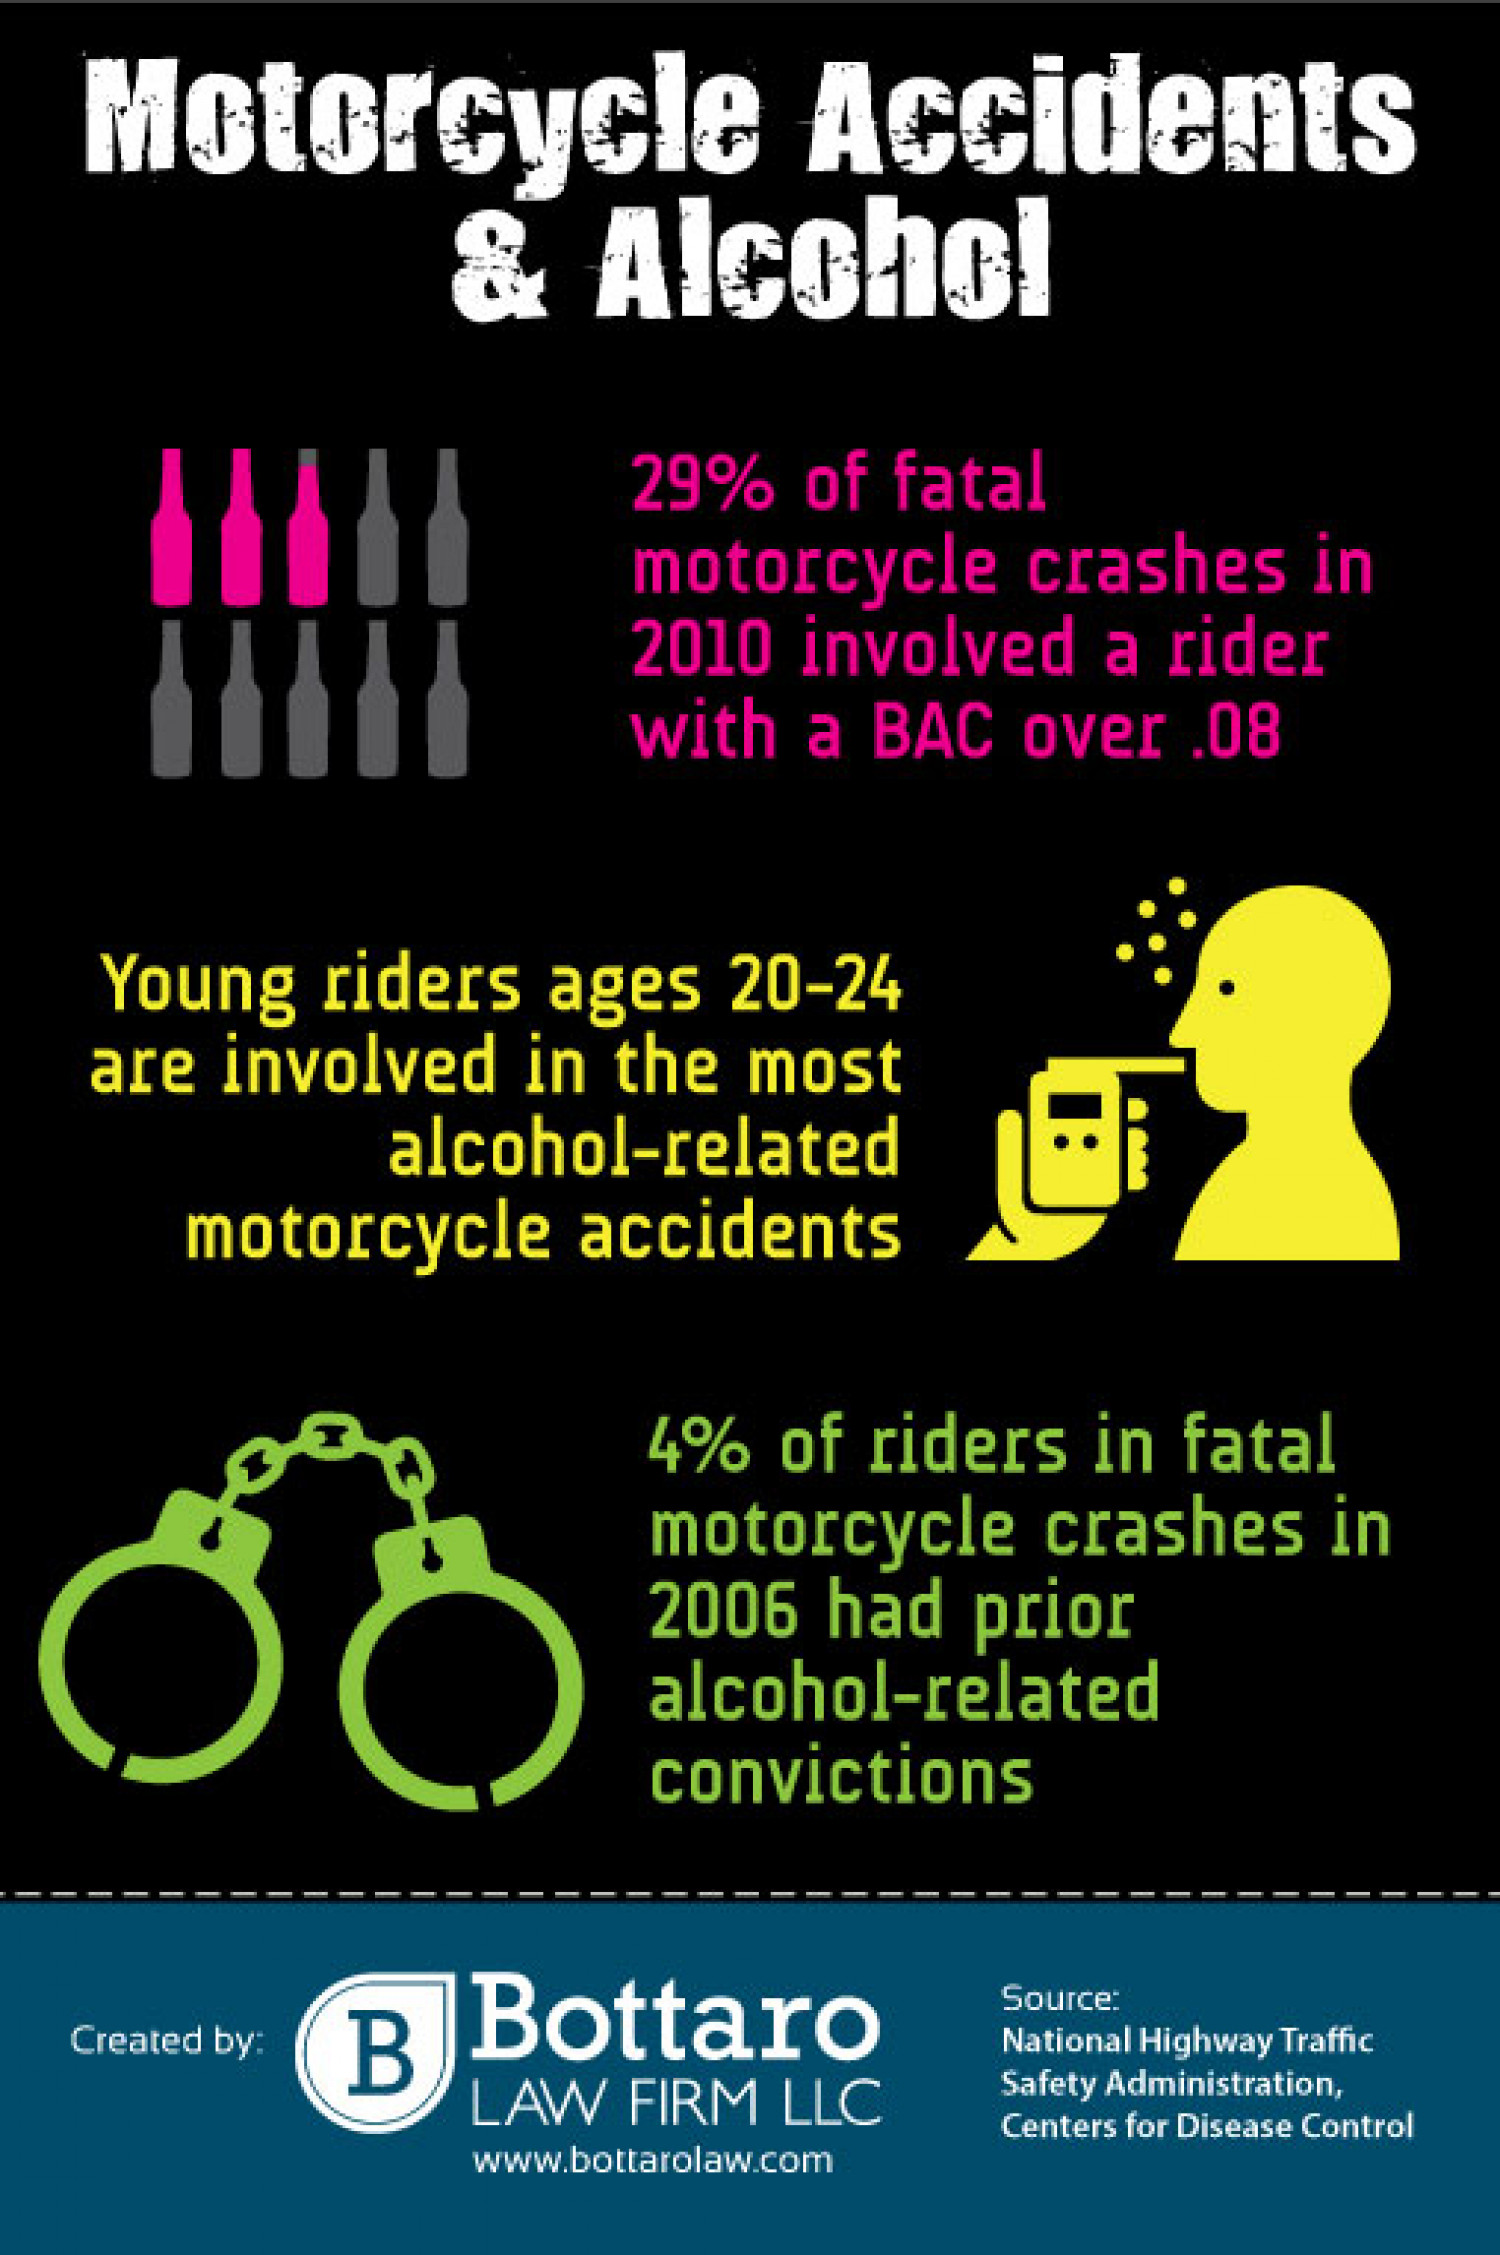 Motorcycle Accidents & Alcohol Infographic